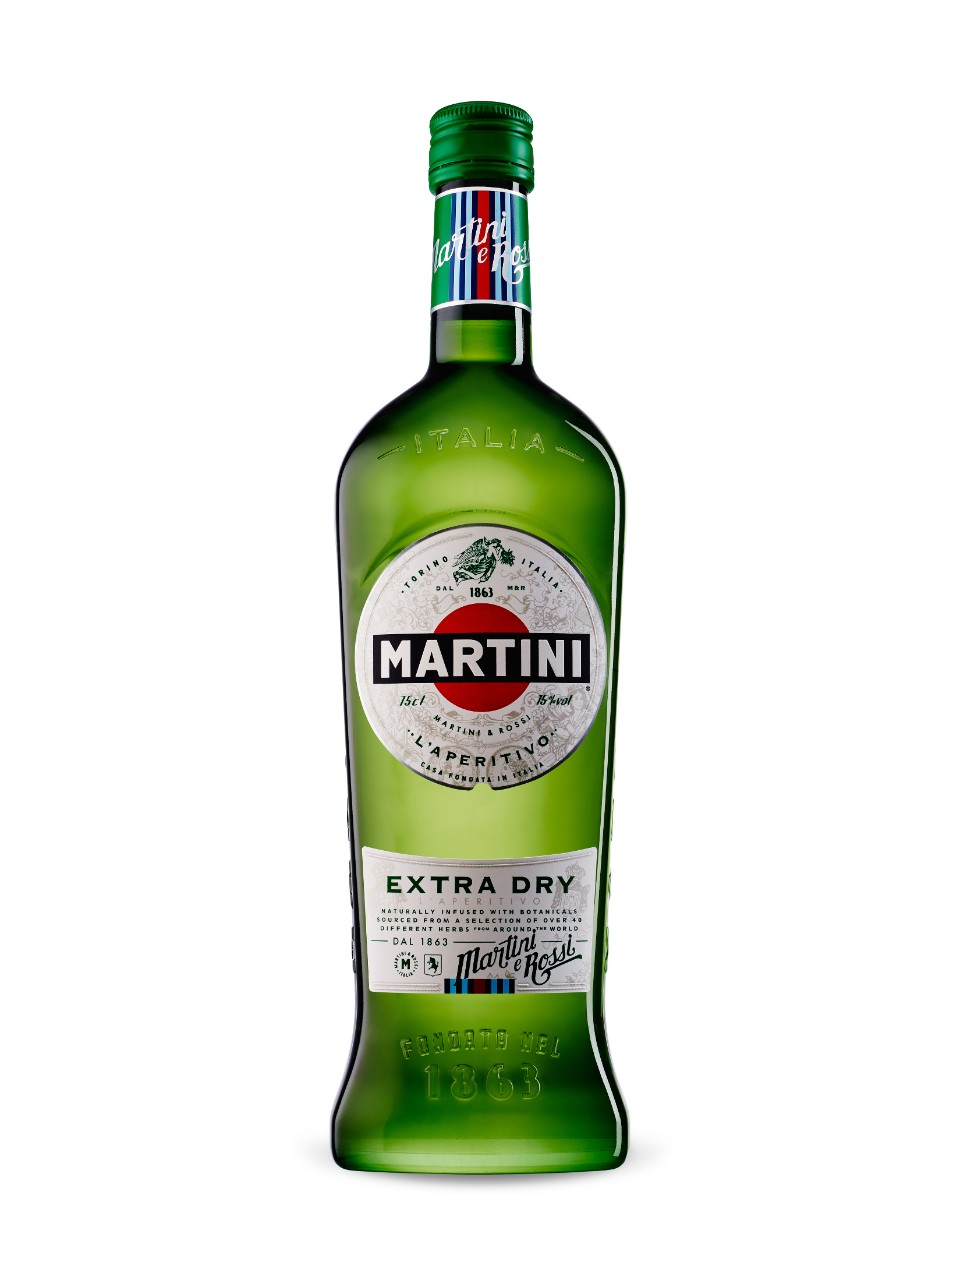 Martini And Rossi Dry Vermouth